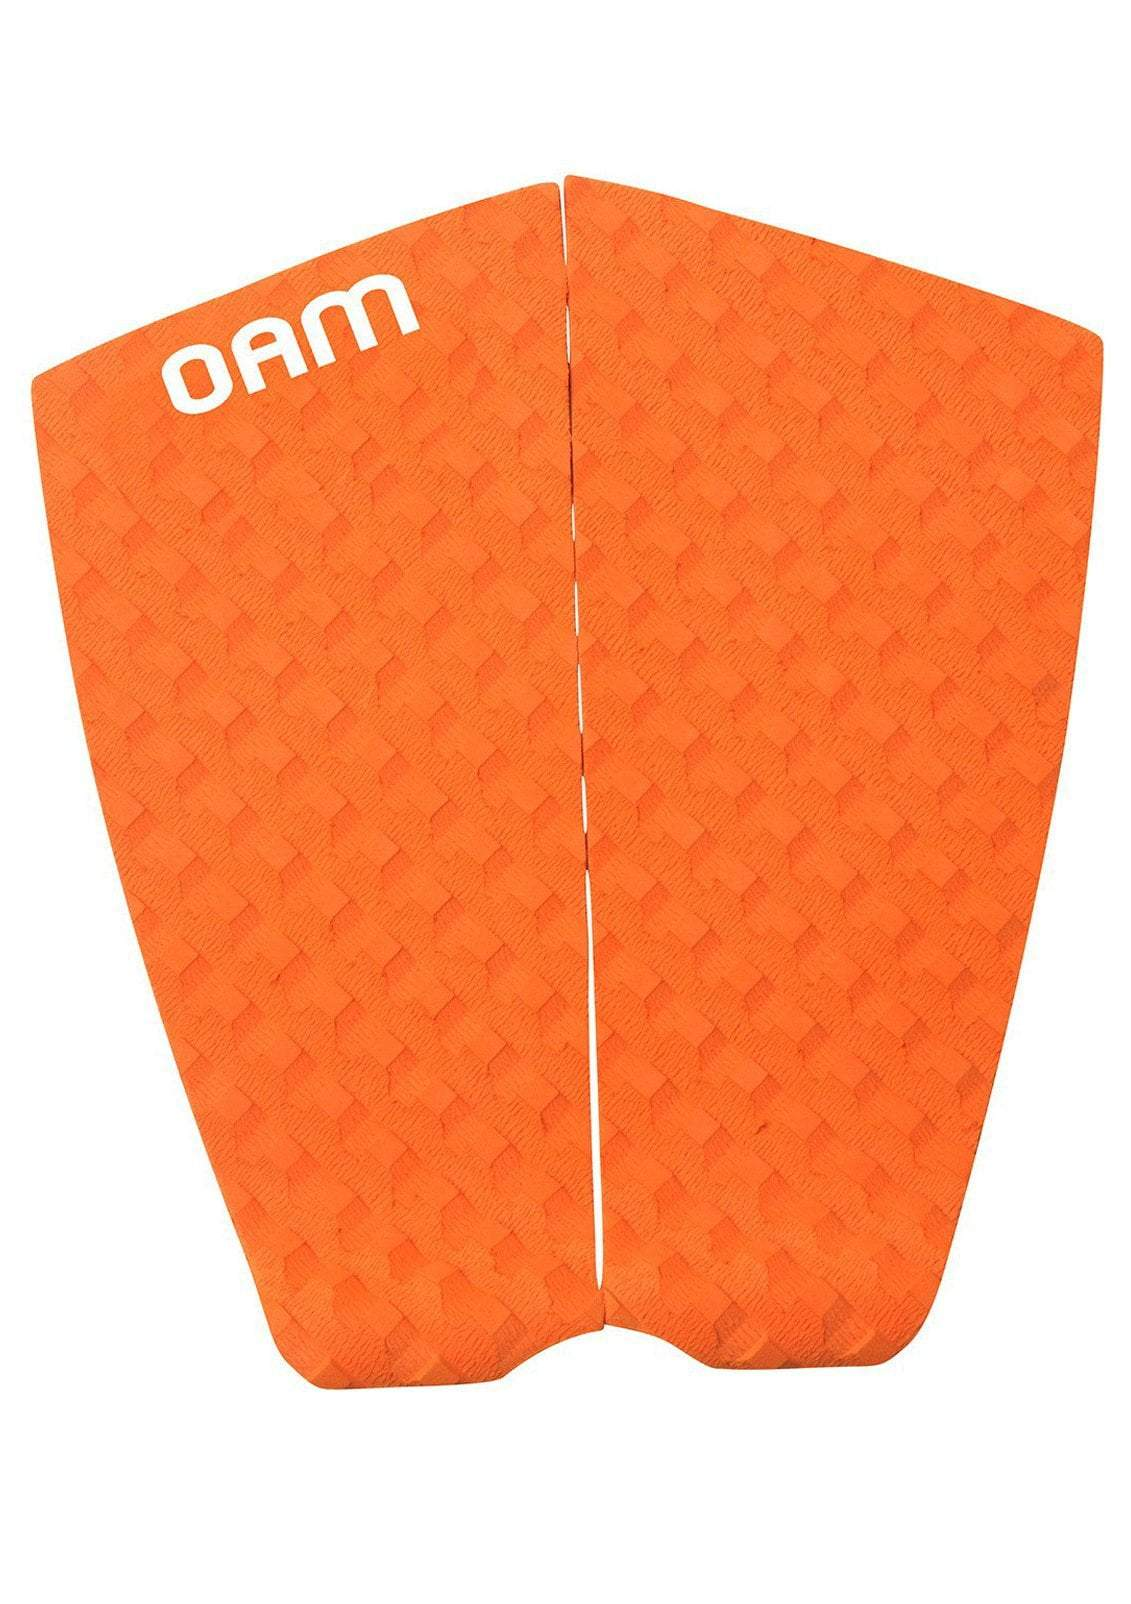 On A Mission Solo 2F Traction Pad